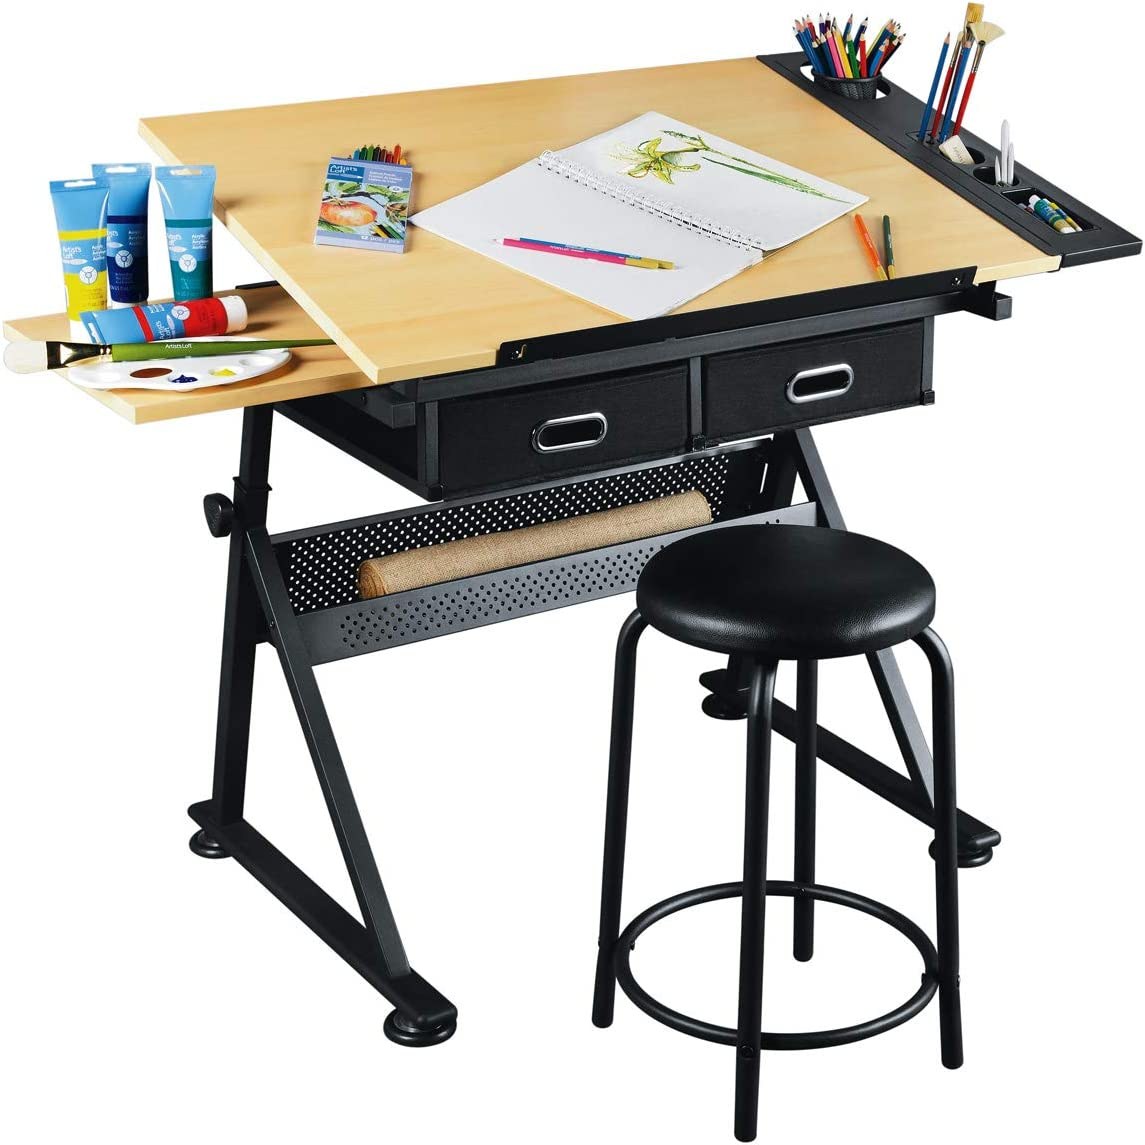 Artist S Loft Arts And Crafts Creative Center Art Desk And Craft Center With Storage